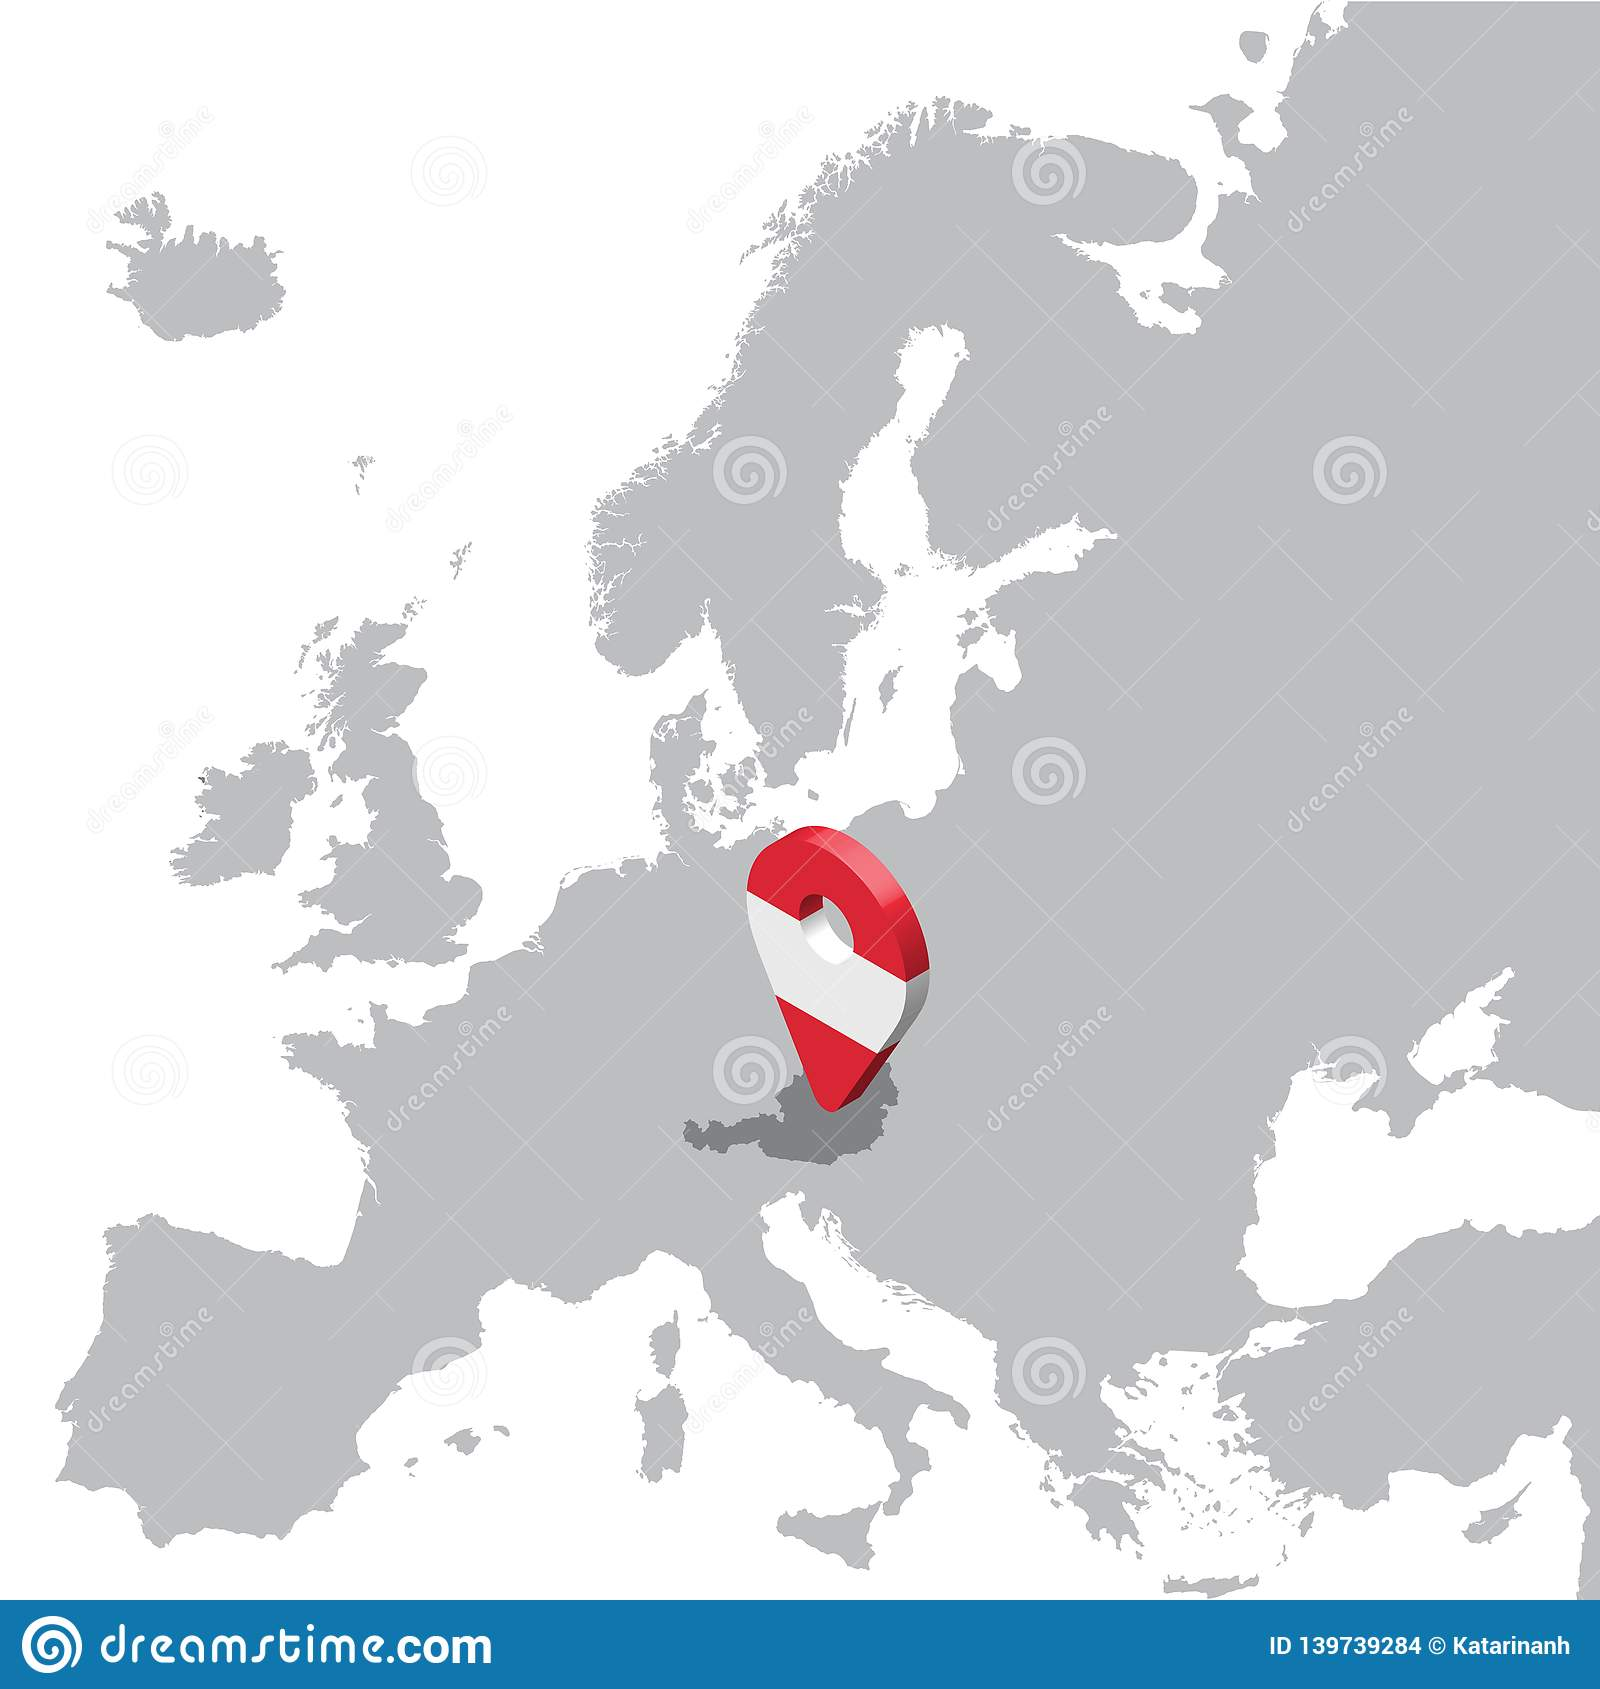 Austria Location Map on map Europe. 3d Austria flag map marker location pin. High quality map Austria.